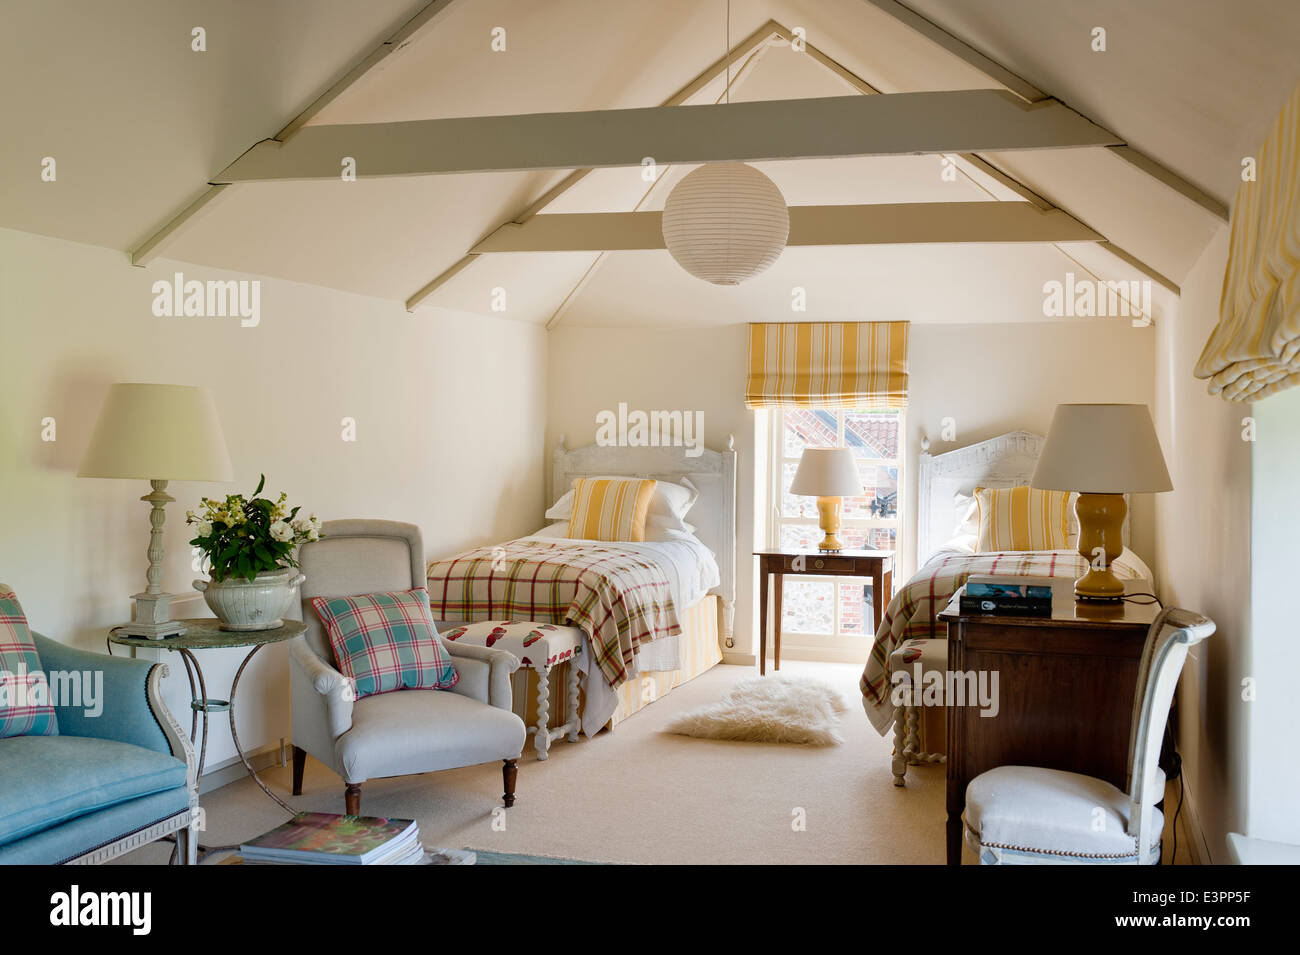 Attic twin bedroom with beamed ceiling, yellow striped matching blinds and cushions and blue armchairs - Stock Image